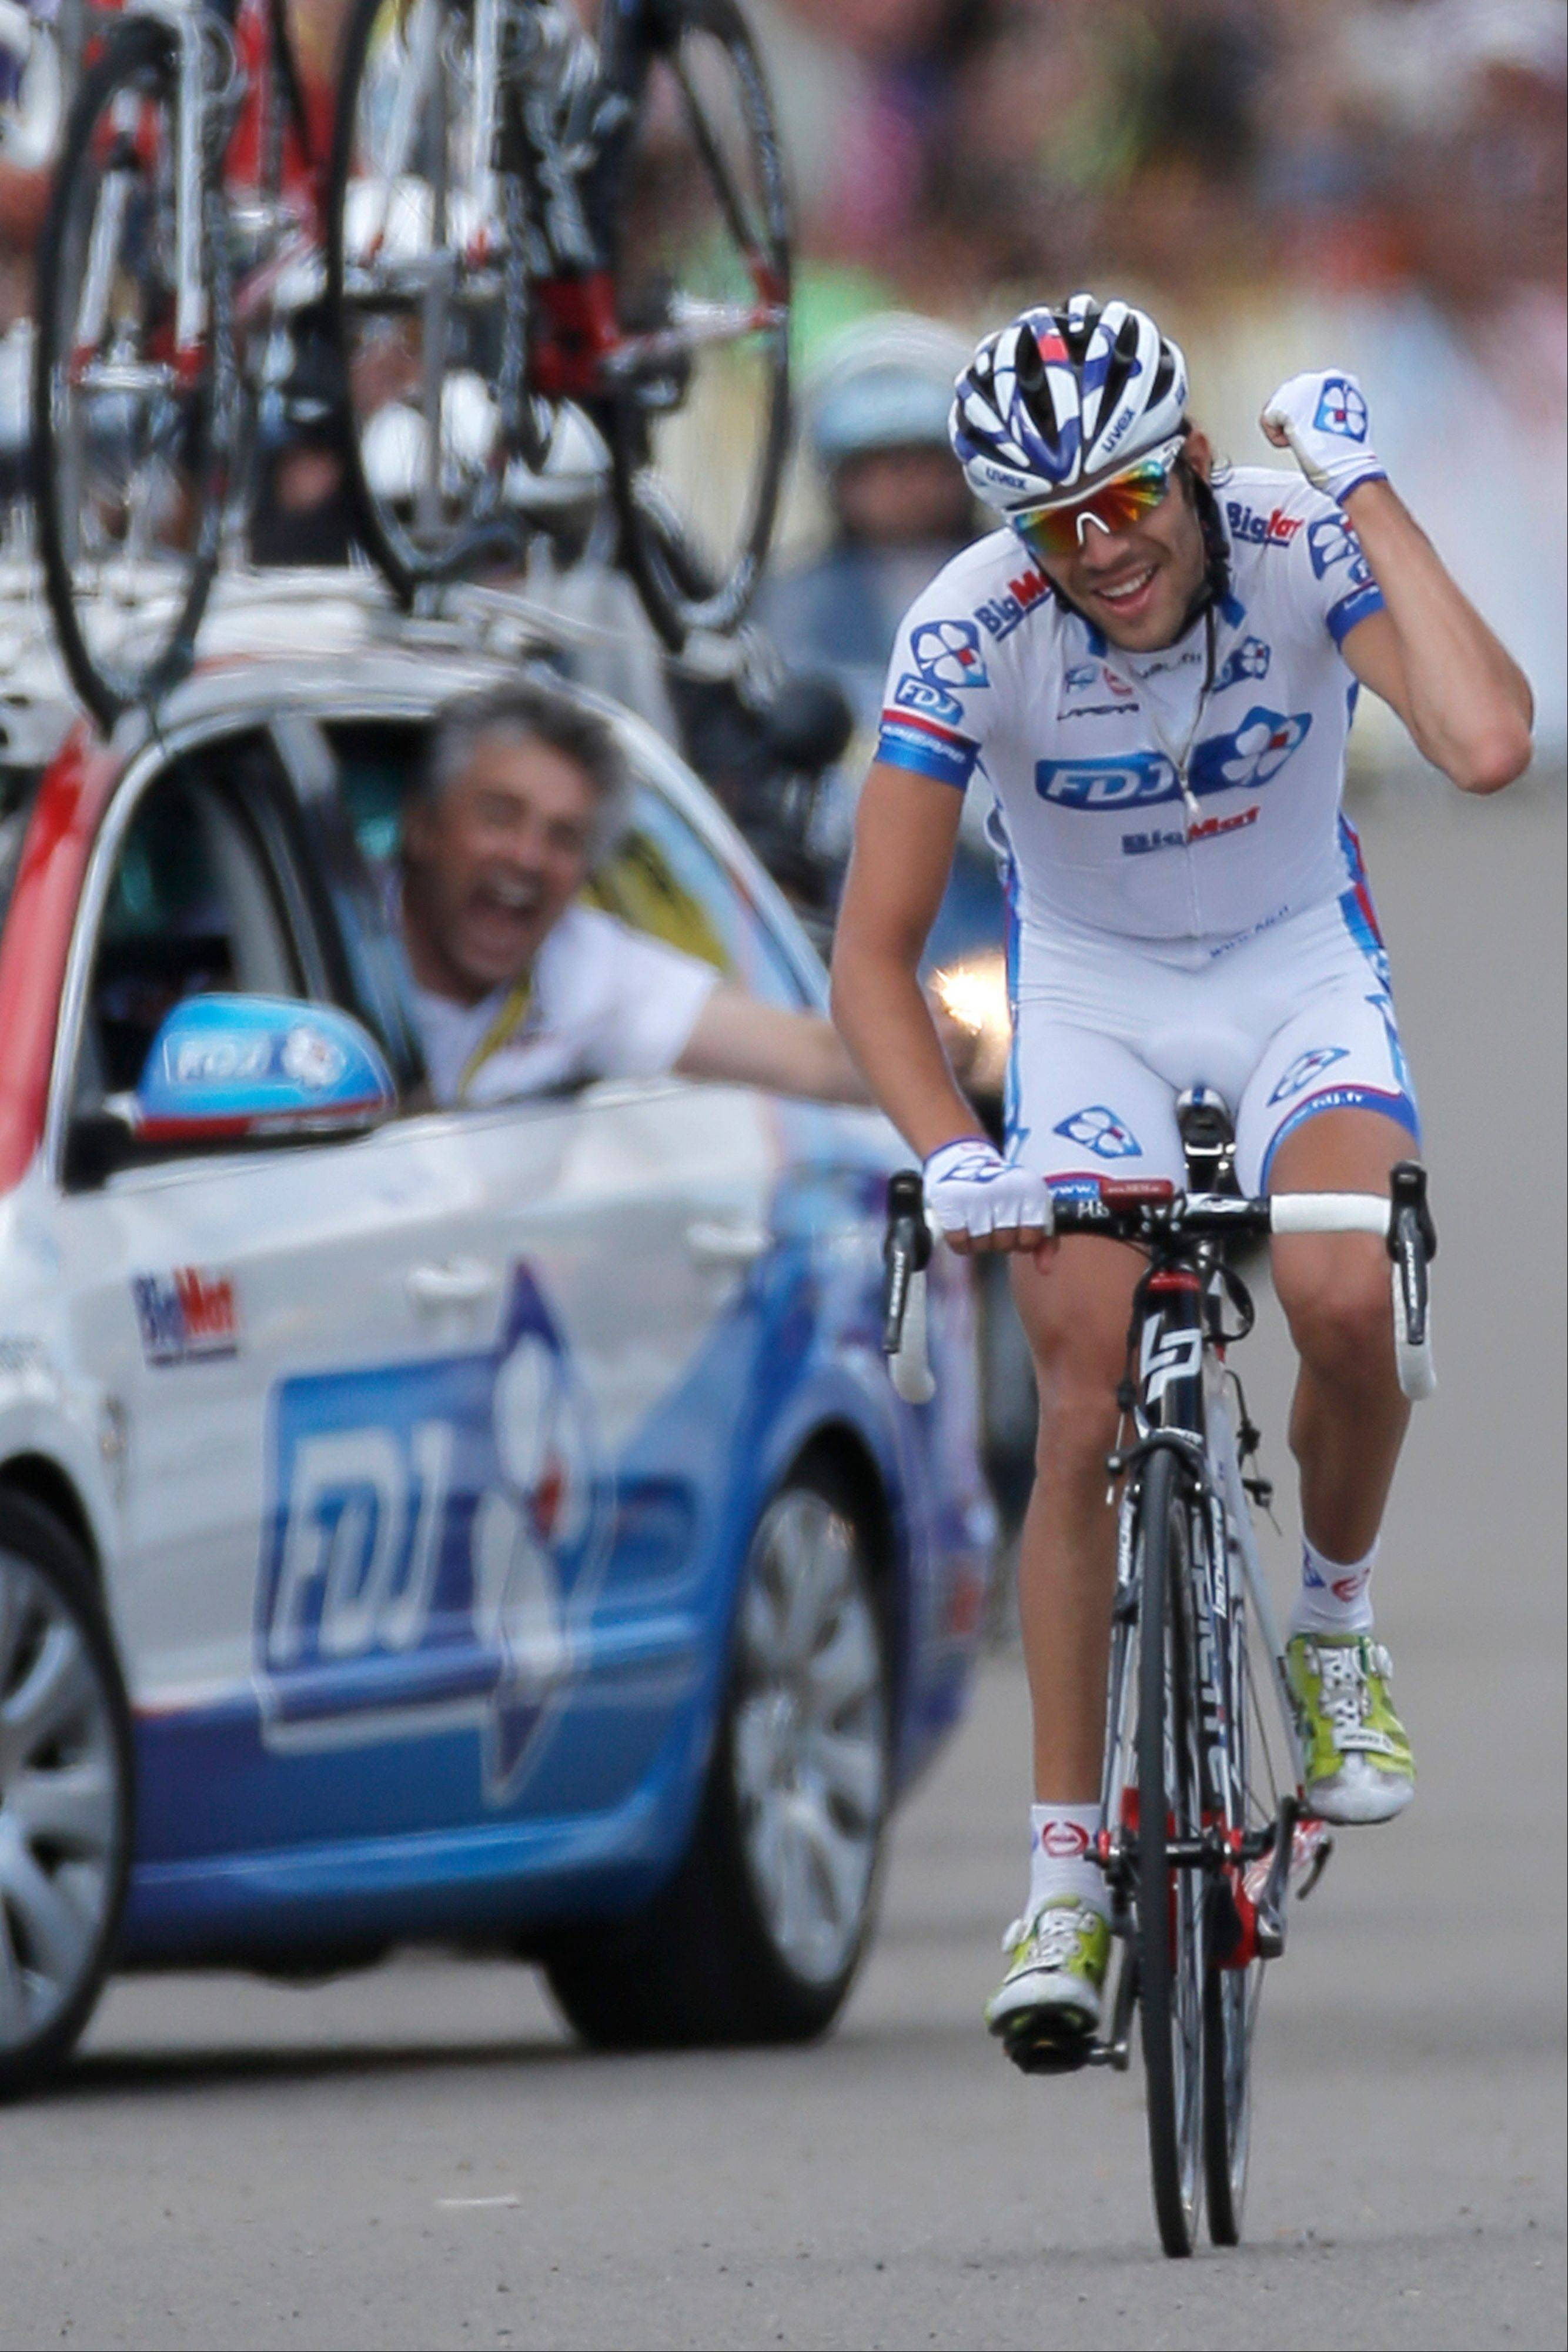 Team director Marc Madiot, left, celebrates in his car as Thibaut Pinot crosses the finish line to win the eighth stage of the Tour de France in 2012